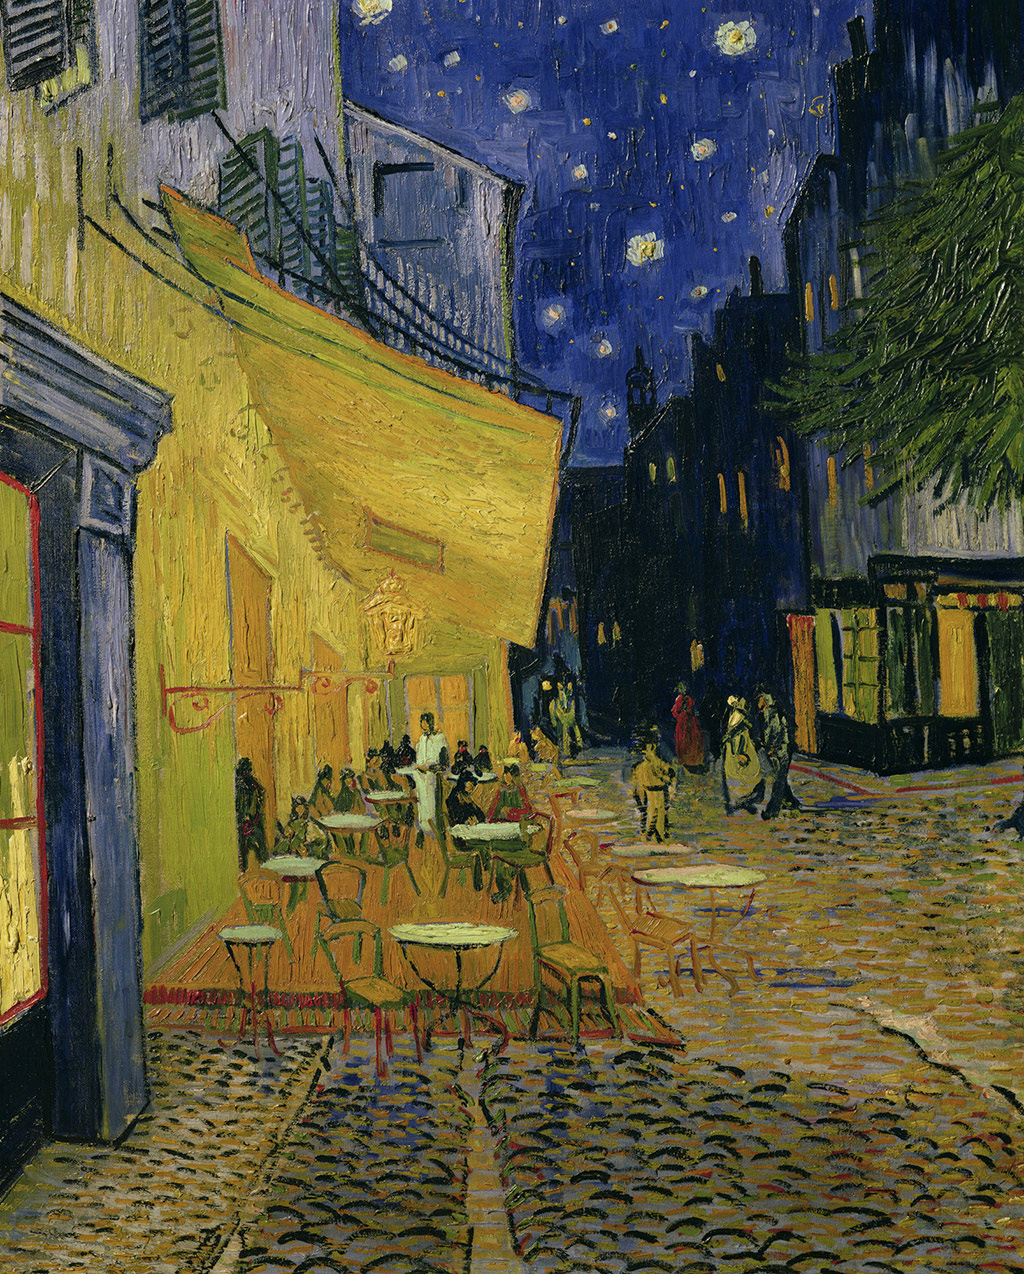 Vincent van Gogh, Café Terrace at Night